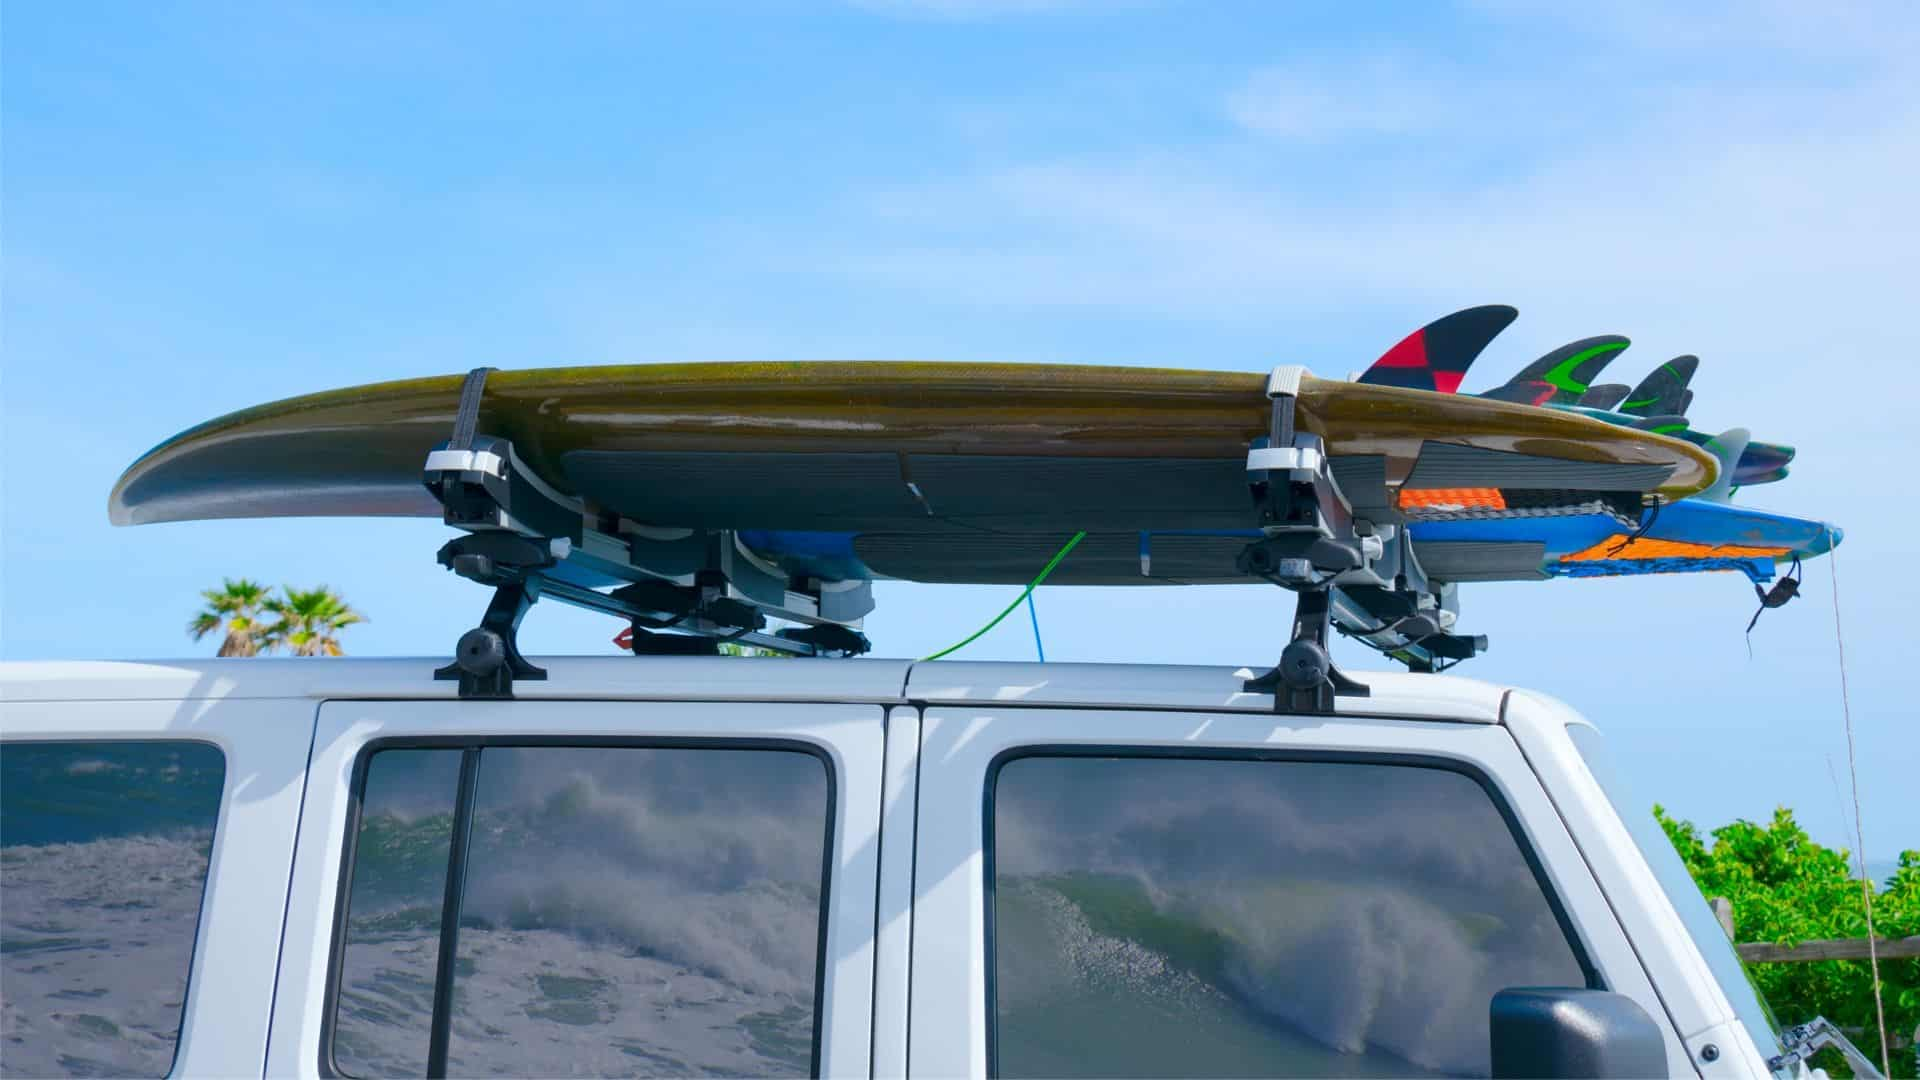 surfboard racks for suvs